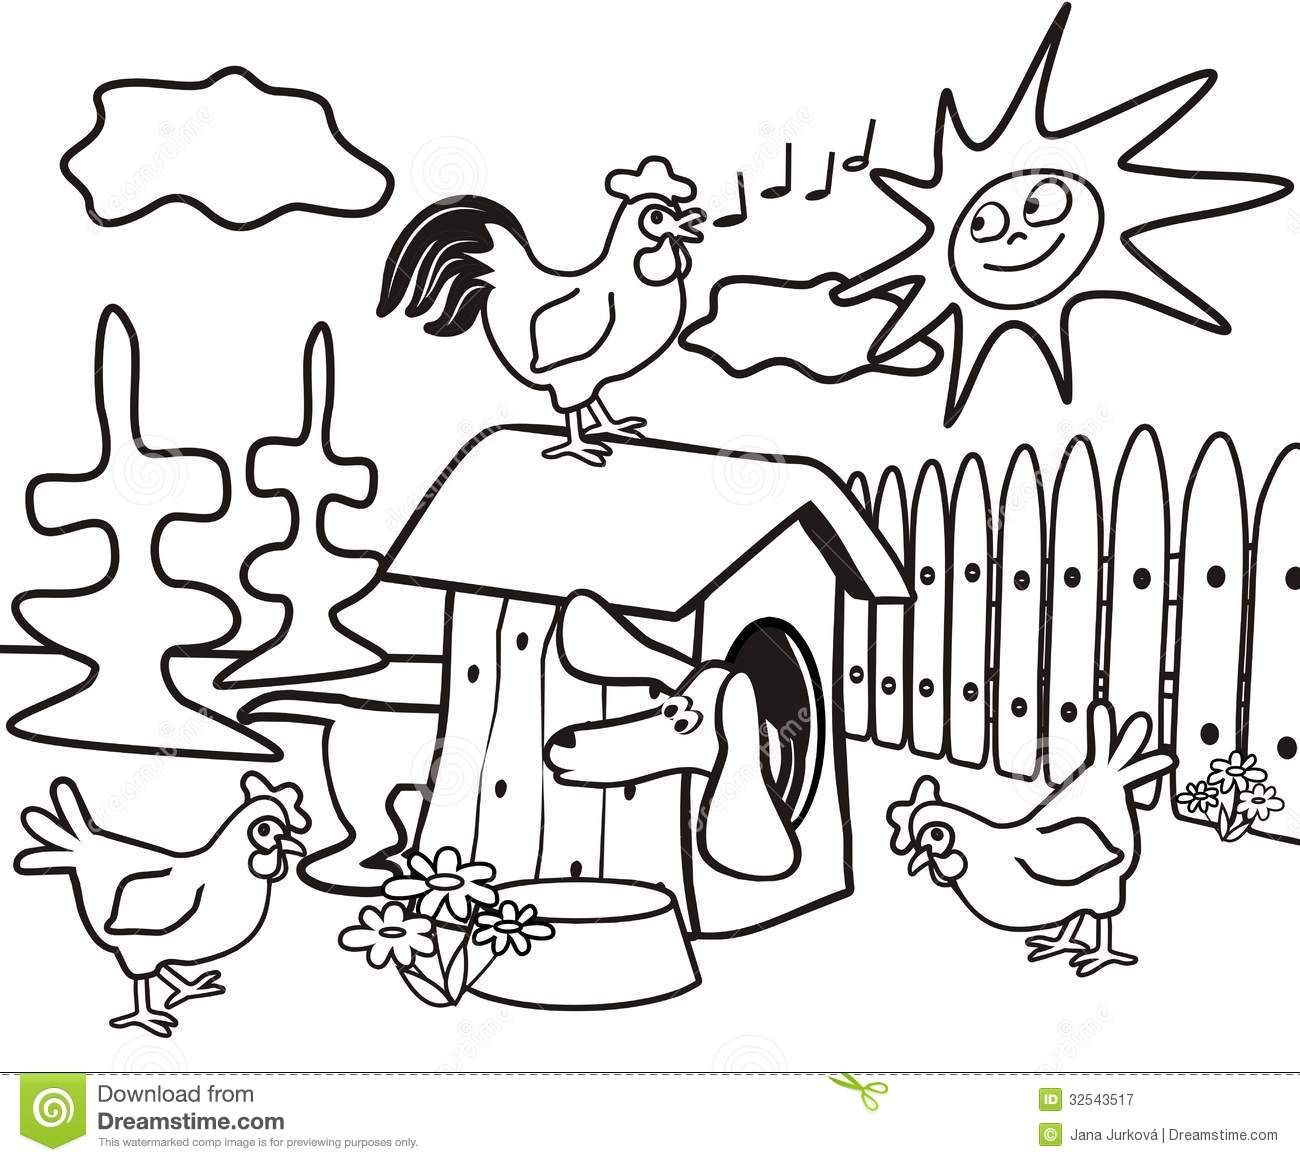 Dachshund Coloring Book Kids Dog Cock Hens